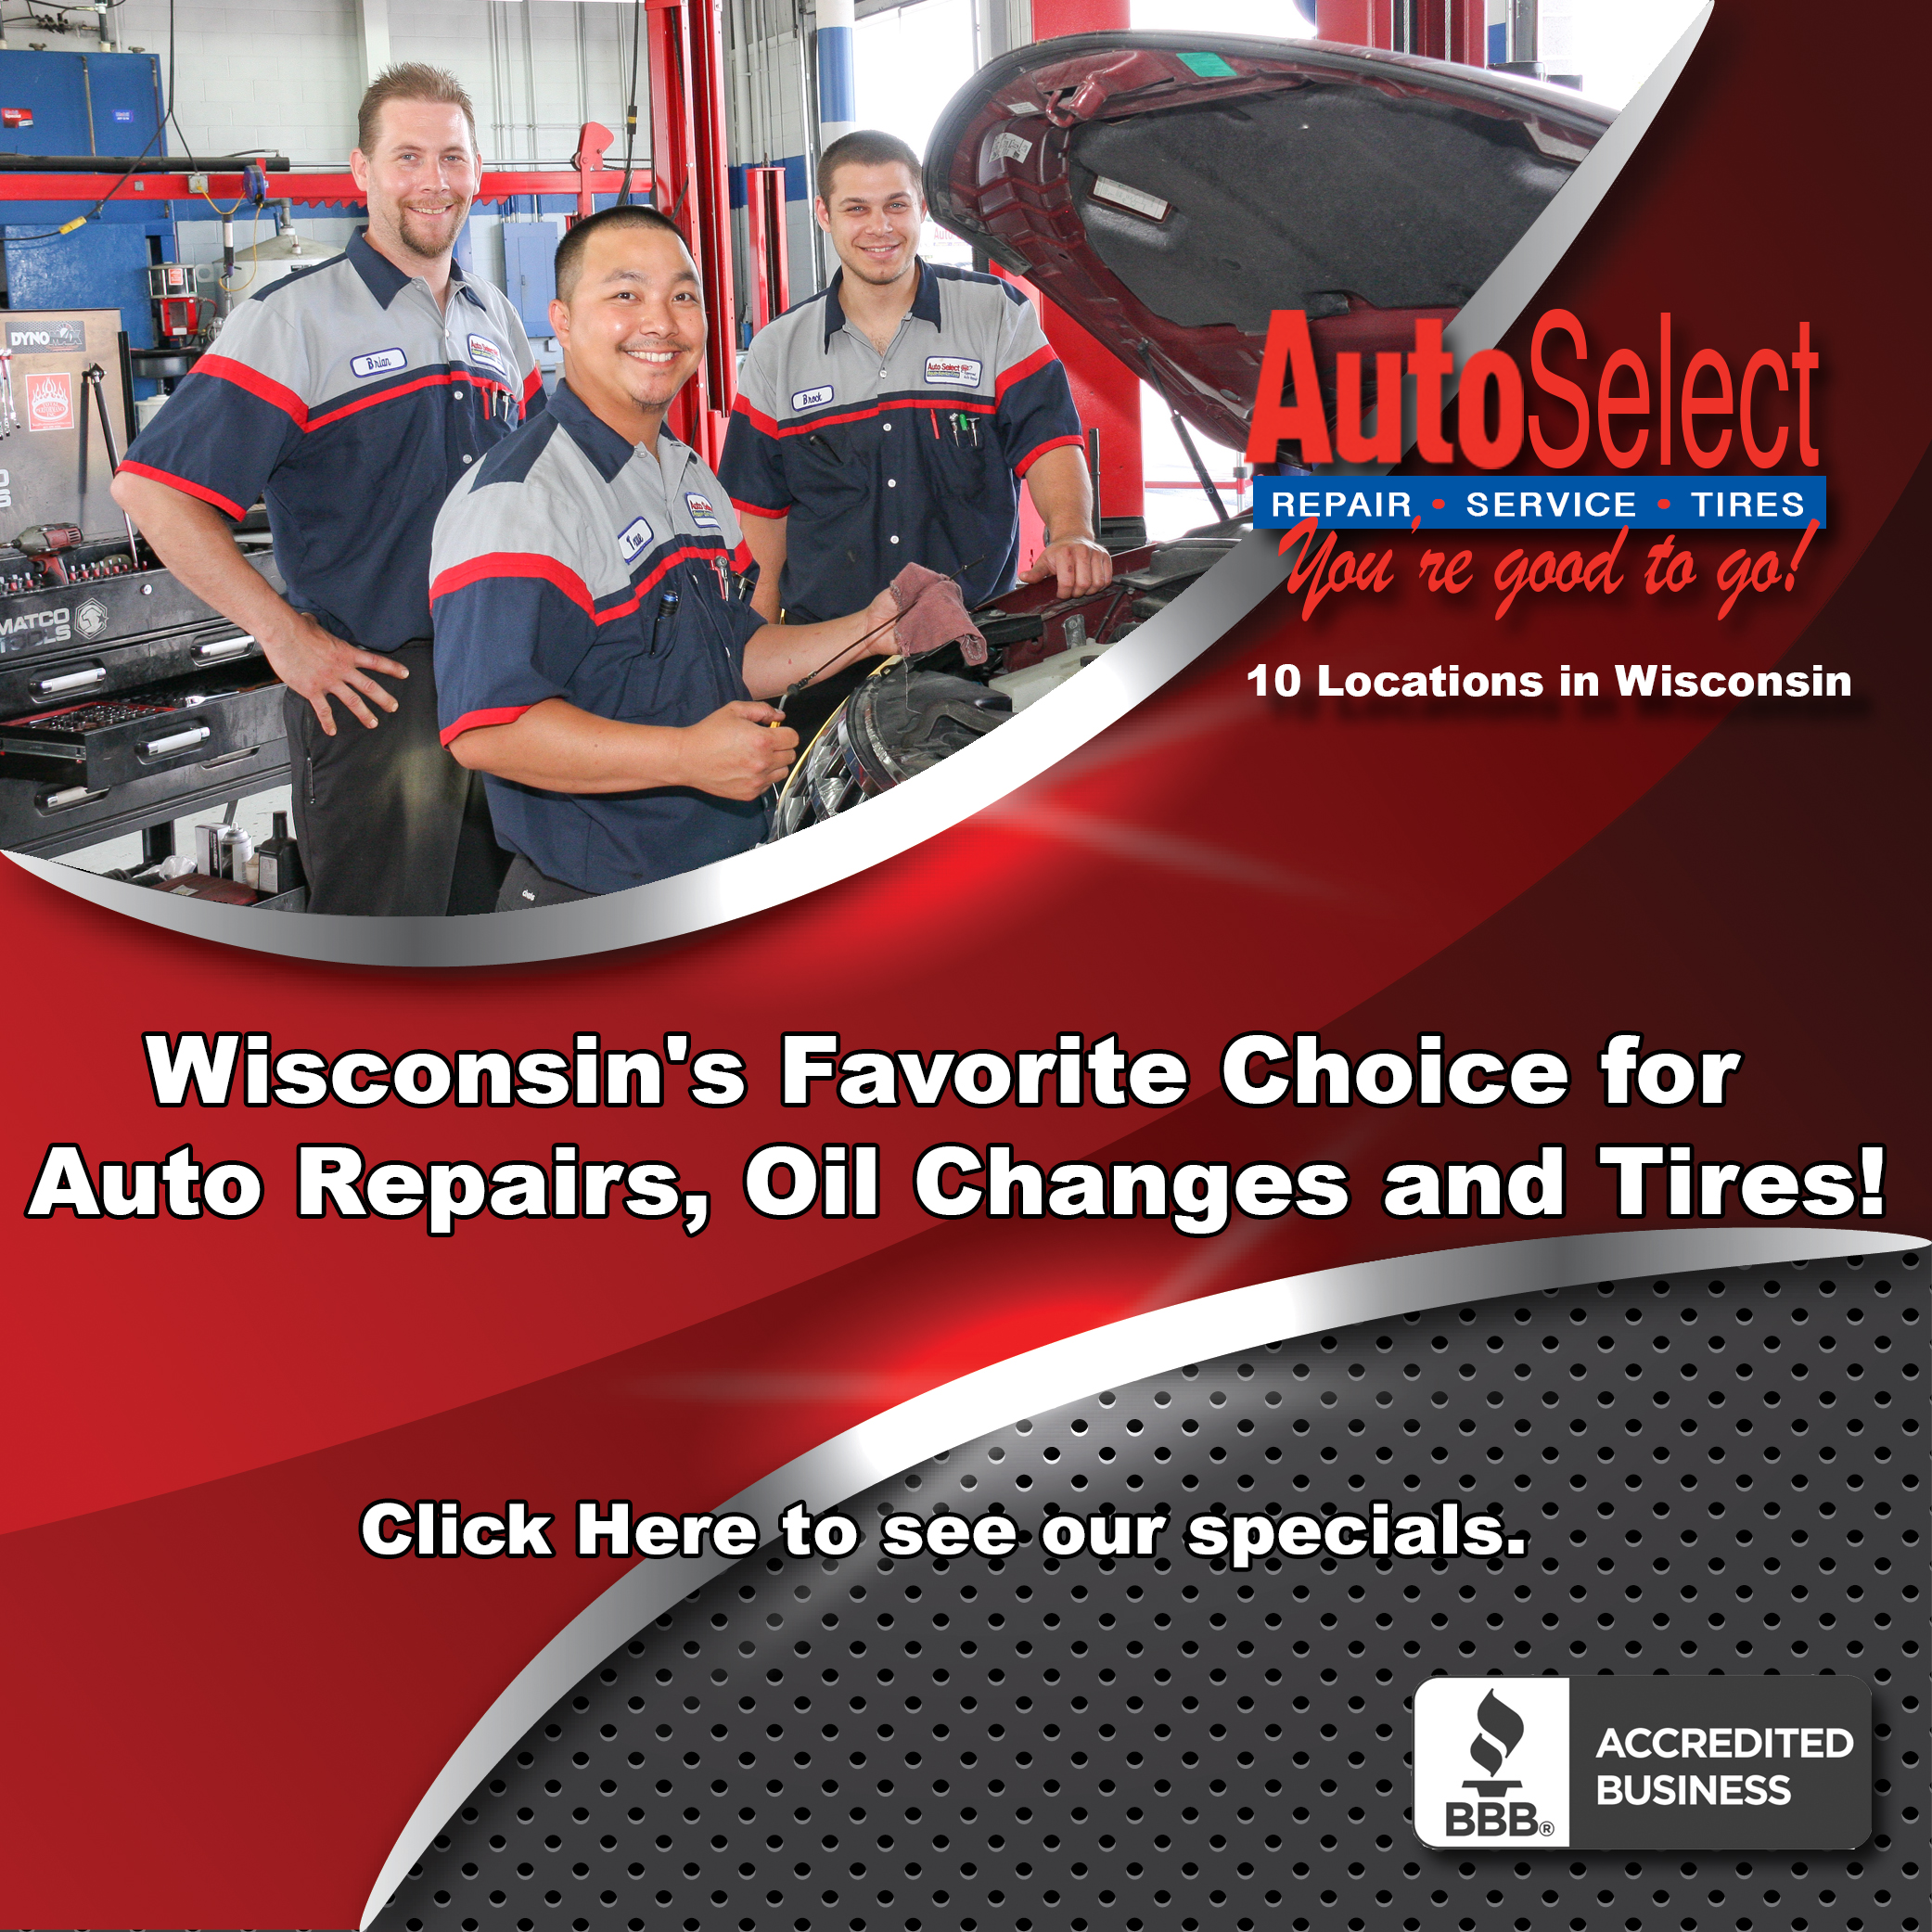 Best Tires Shop in Appleton WI